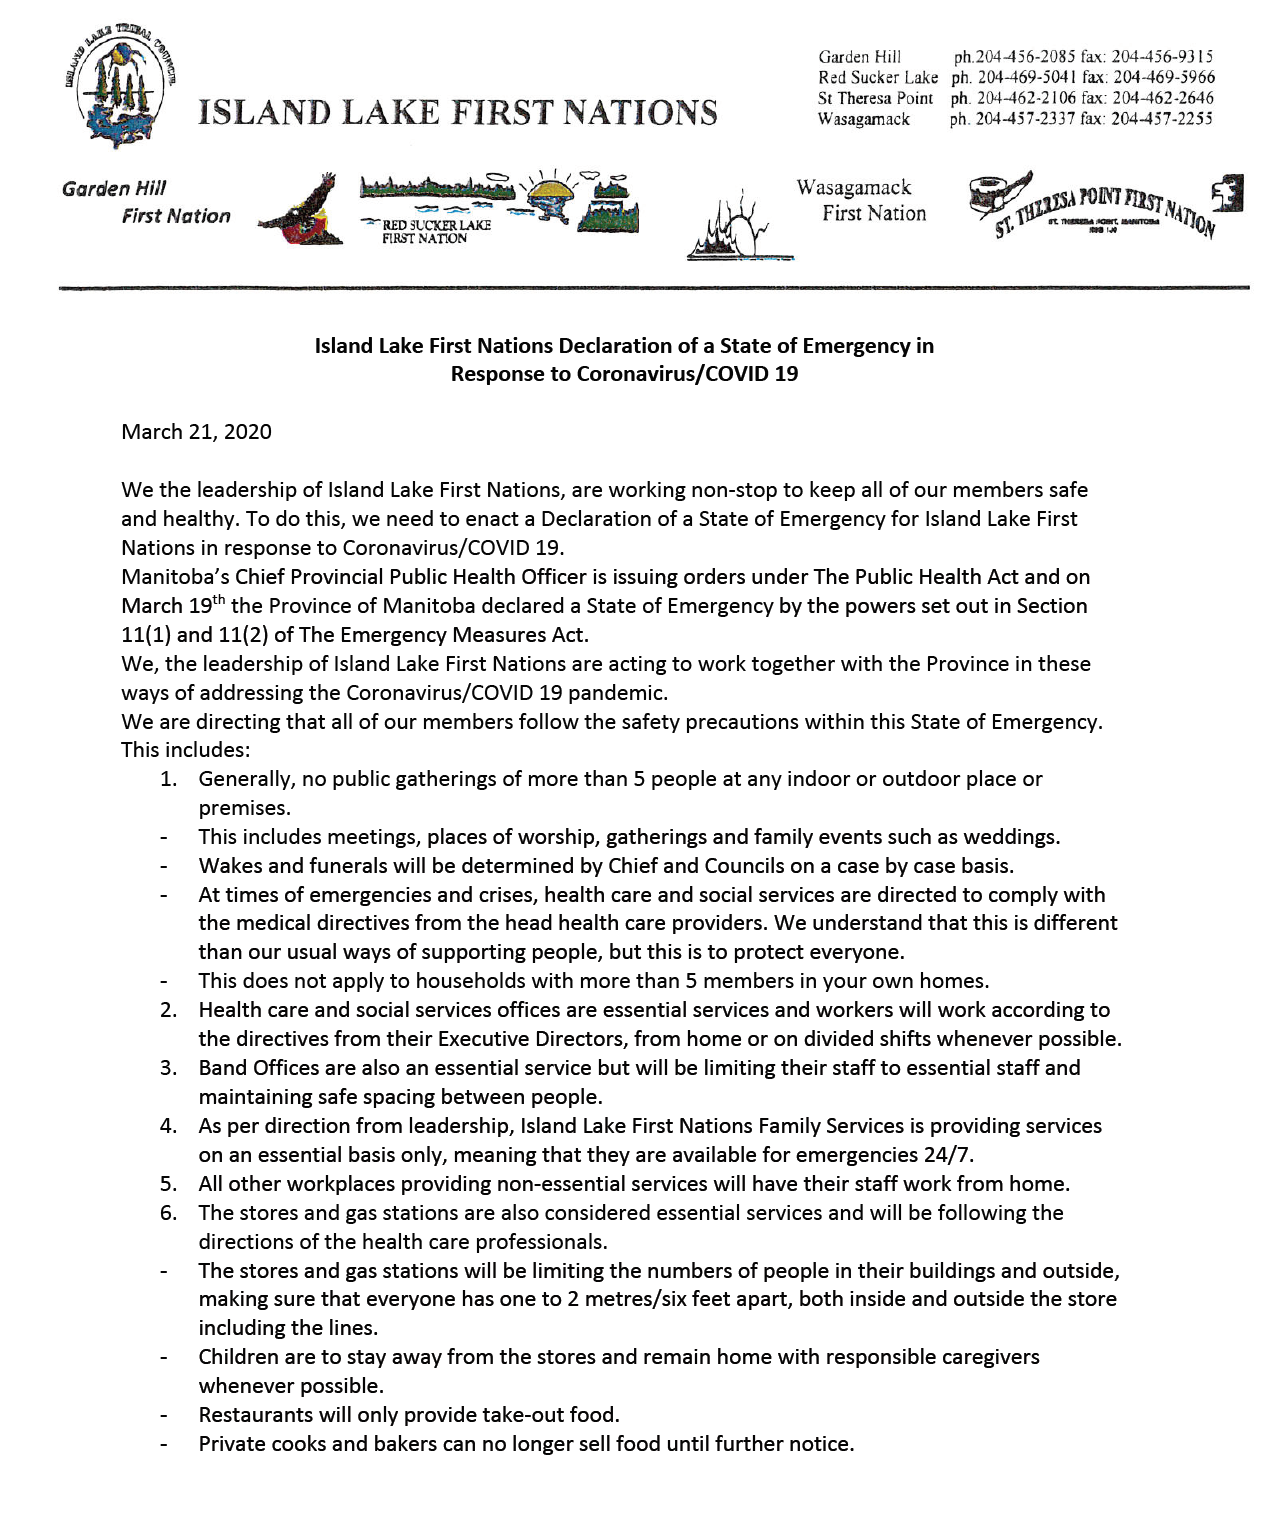 Island Lake First Nations Declaration of a State of Emergency in Response to Coronavirus/COVID 19